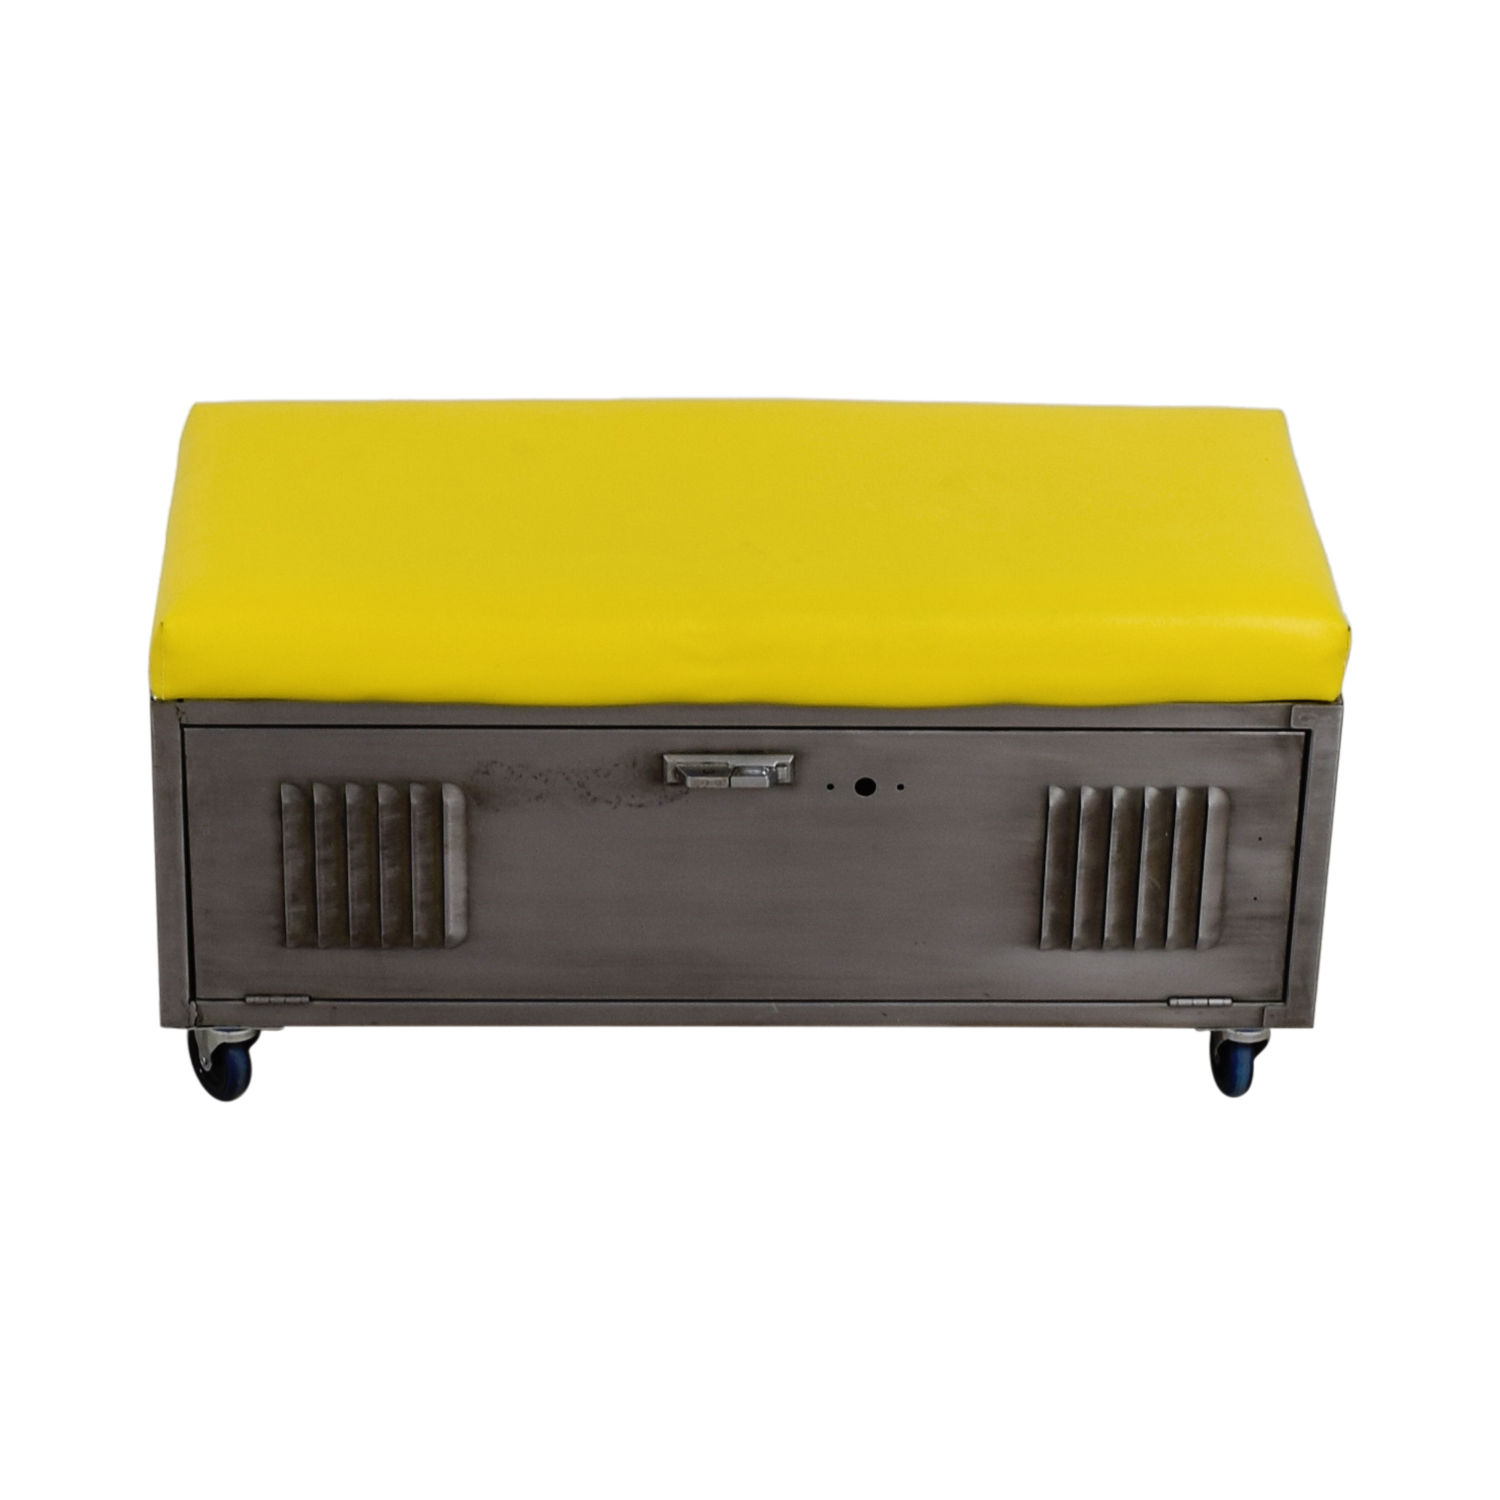 Custom Metal Locker Base Bench on Casters with Yellow Leather Cushion for sale